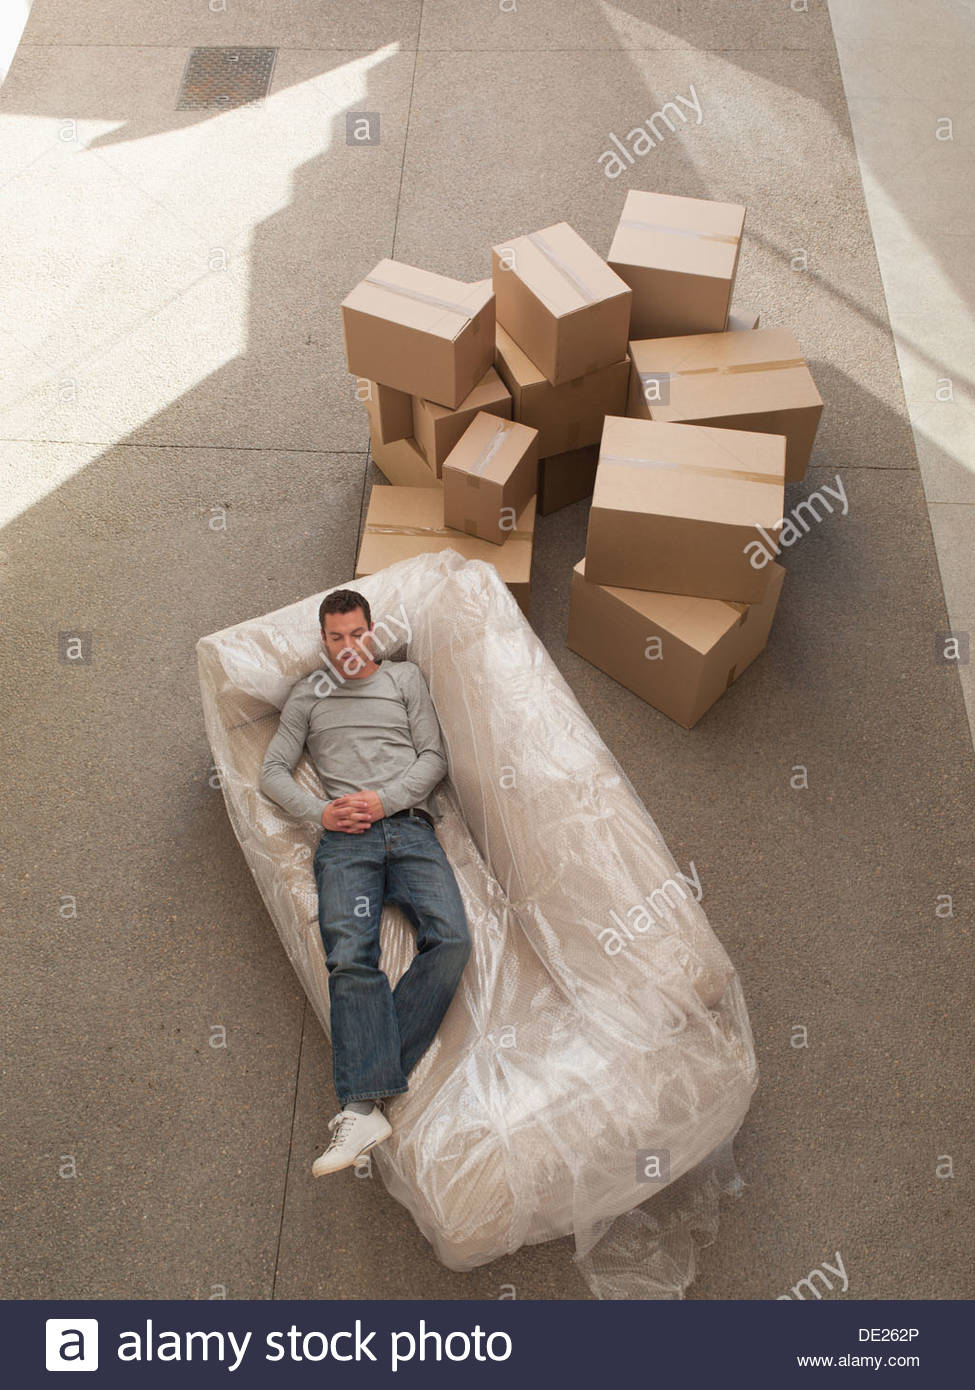 Man sleeping on sofa wrapped in plastic - Stock Image